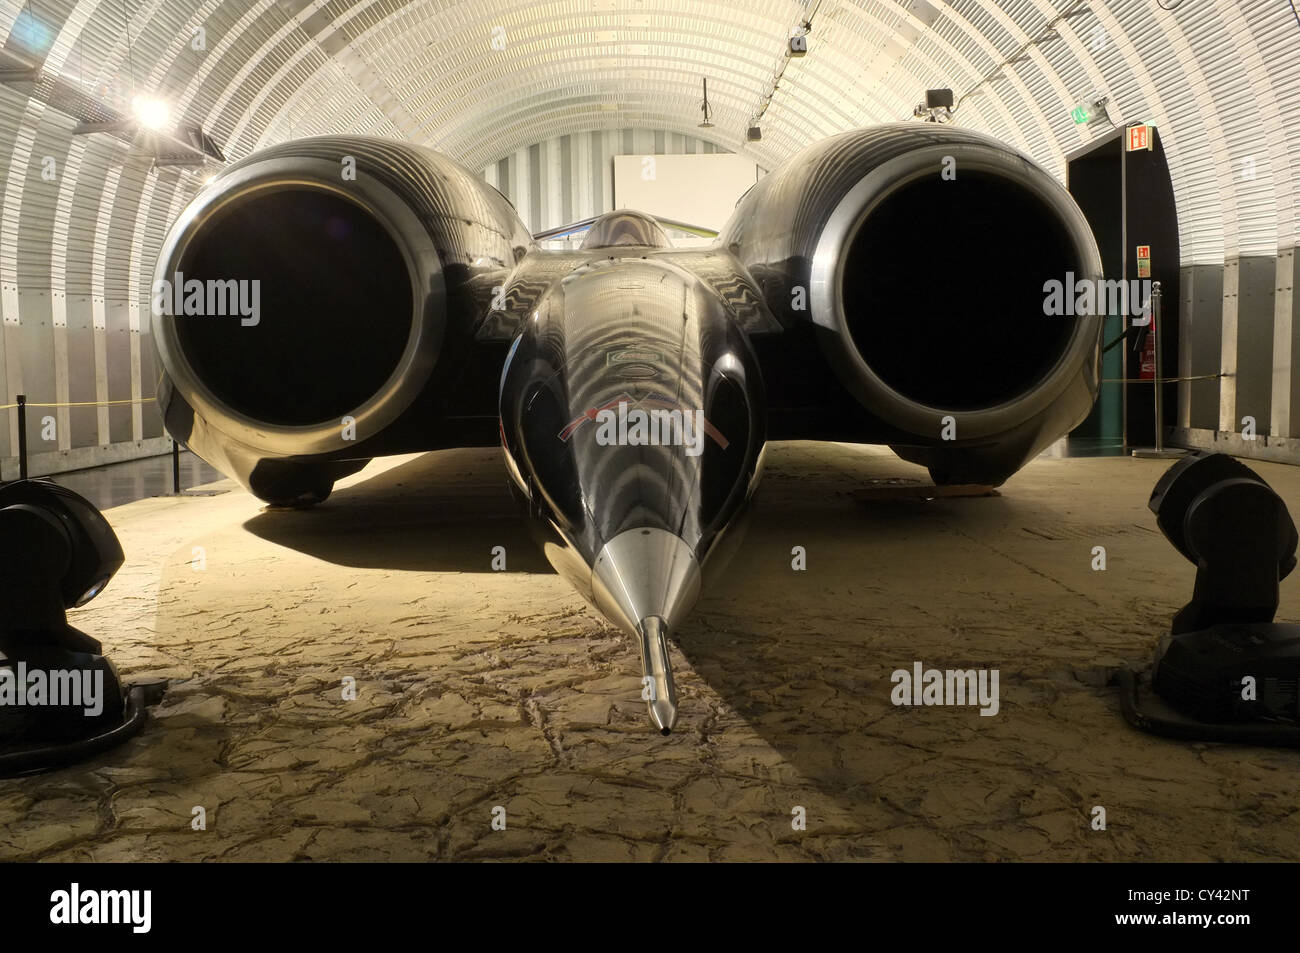 Thrust SSC Supersonic Car, Worlds fastest car & Land speed record holder - Stock Image